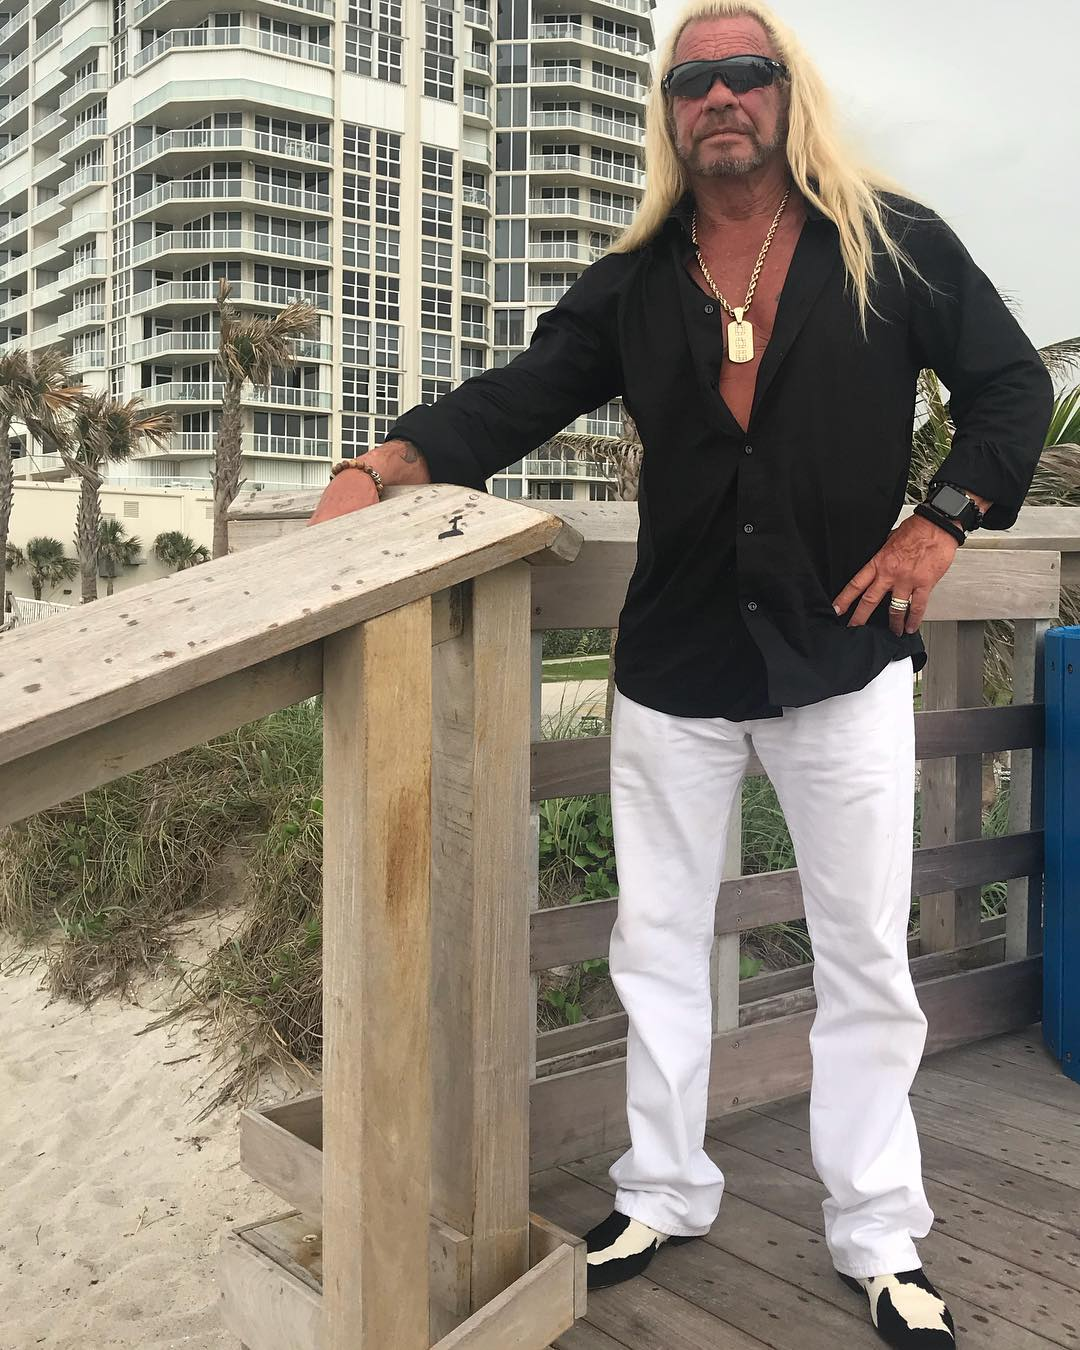 duane dog chapman standing on a deck on the beach